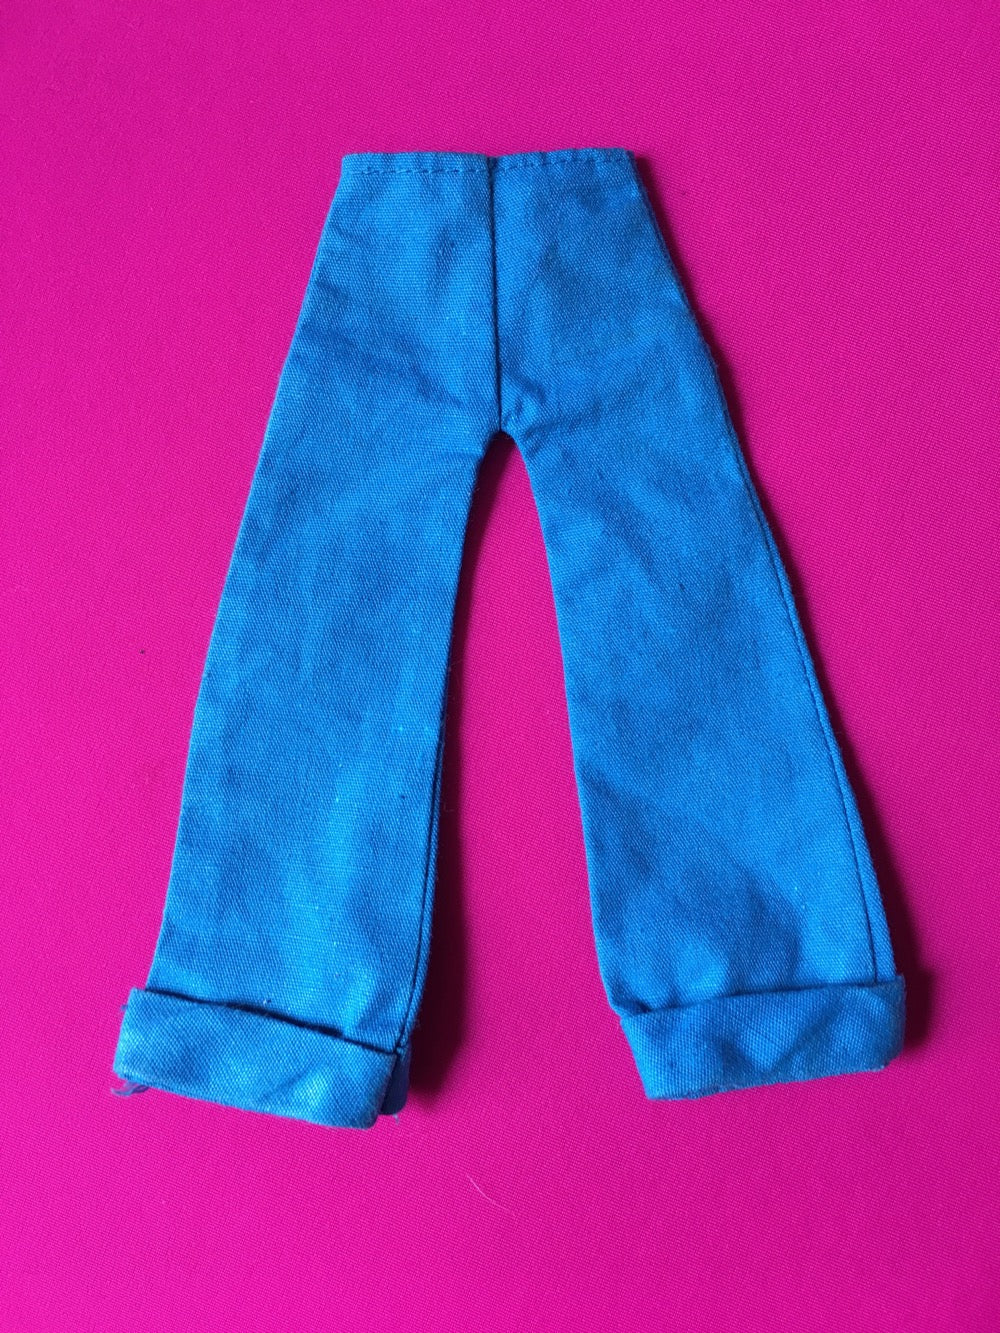 Palitoy Action Girl blue trousers flared 1970s with turn ups